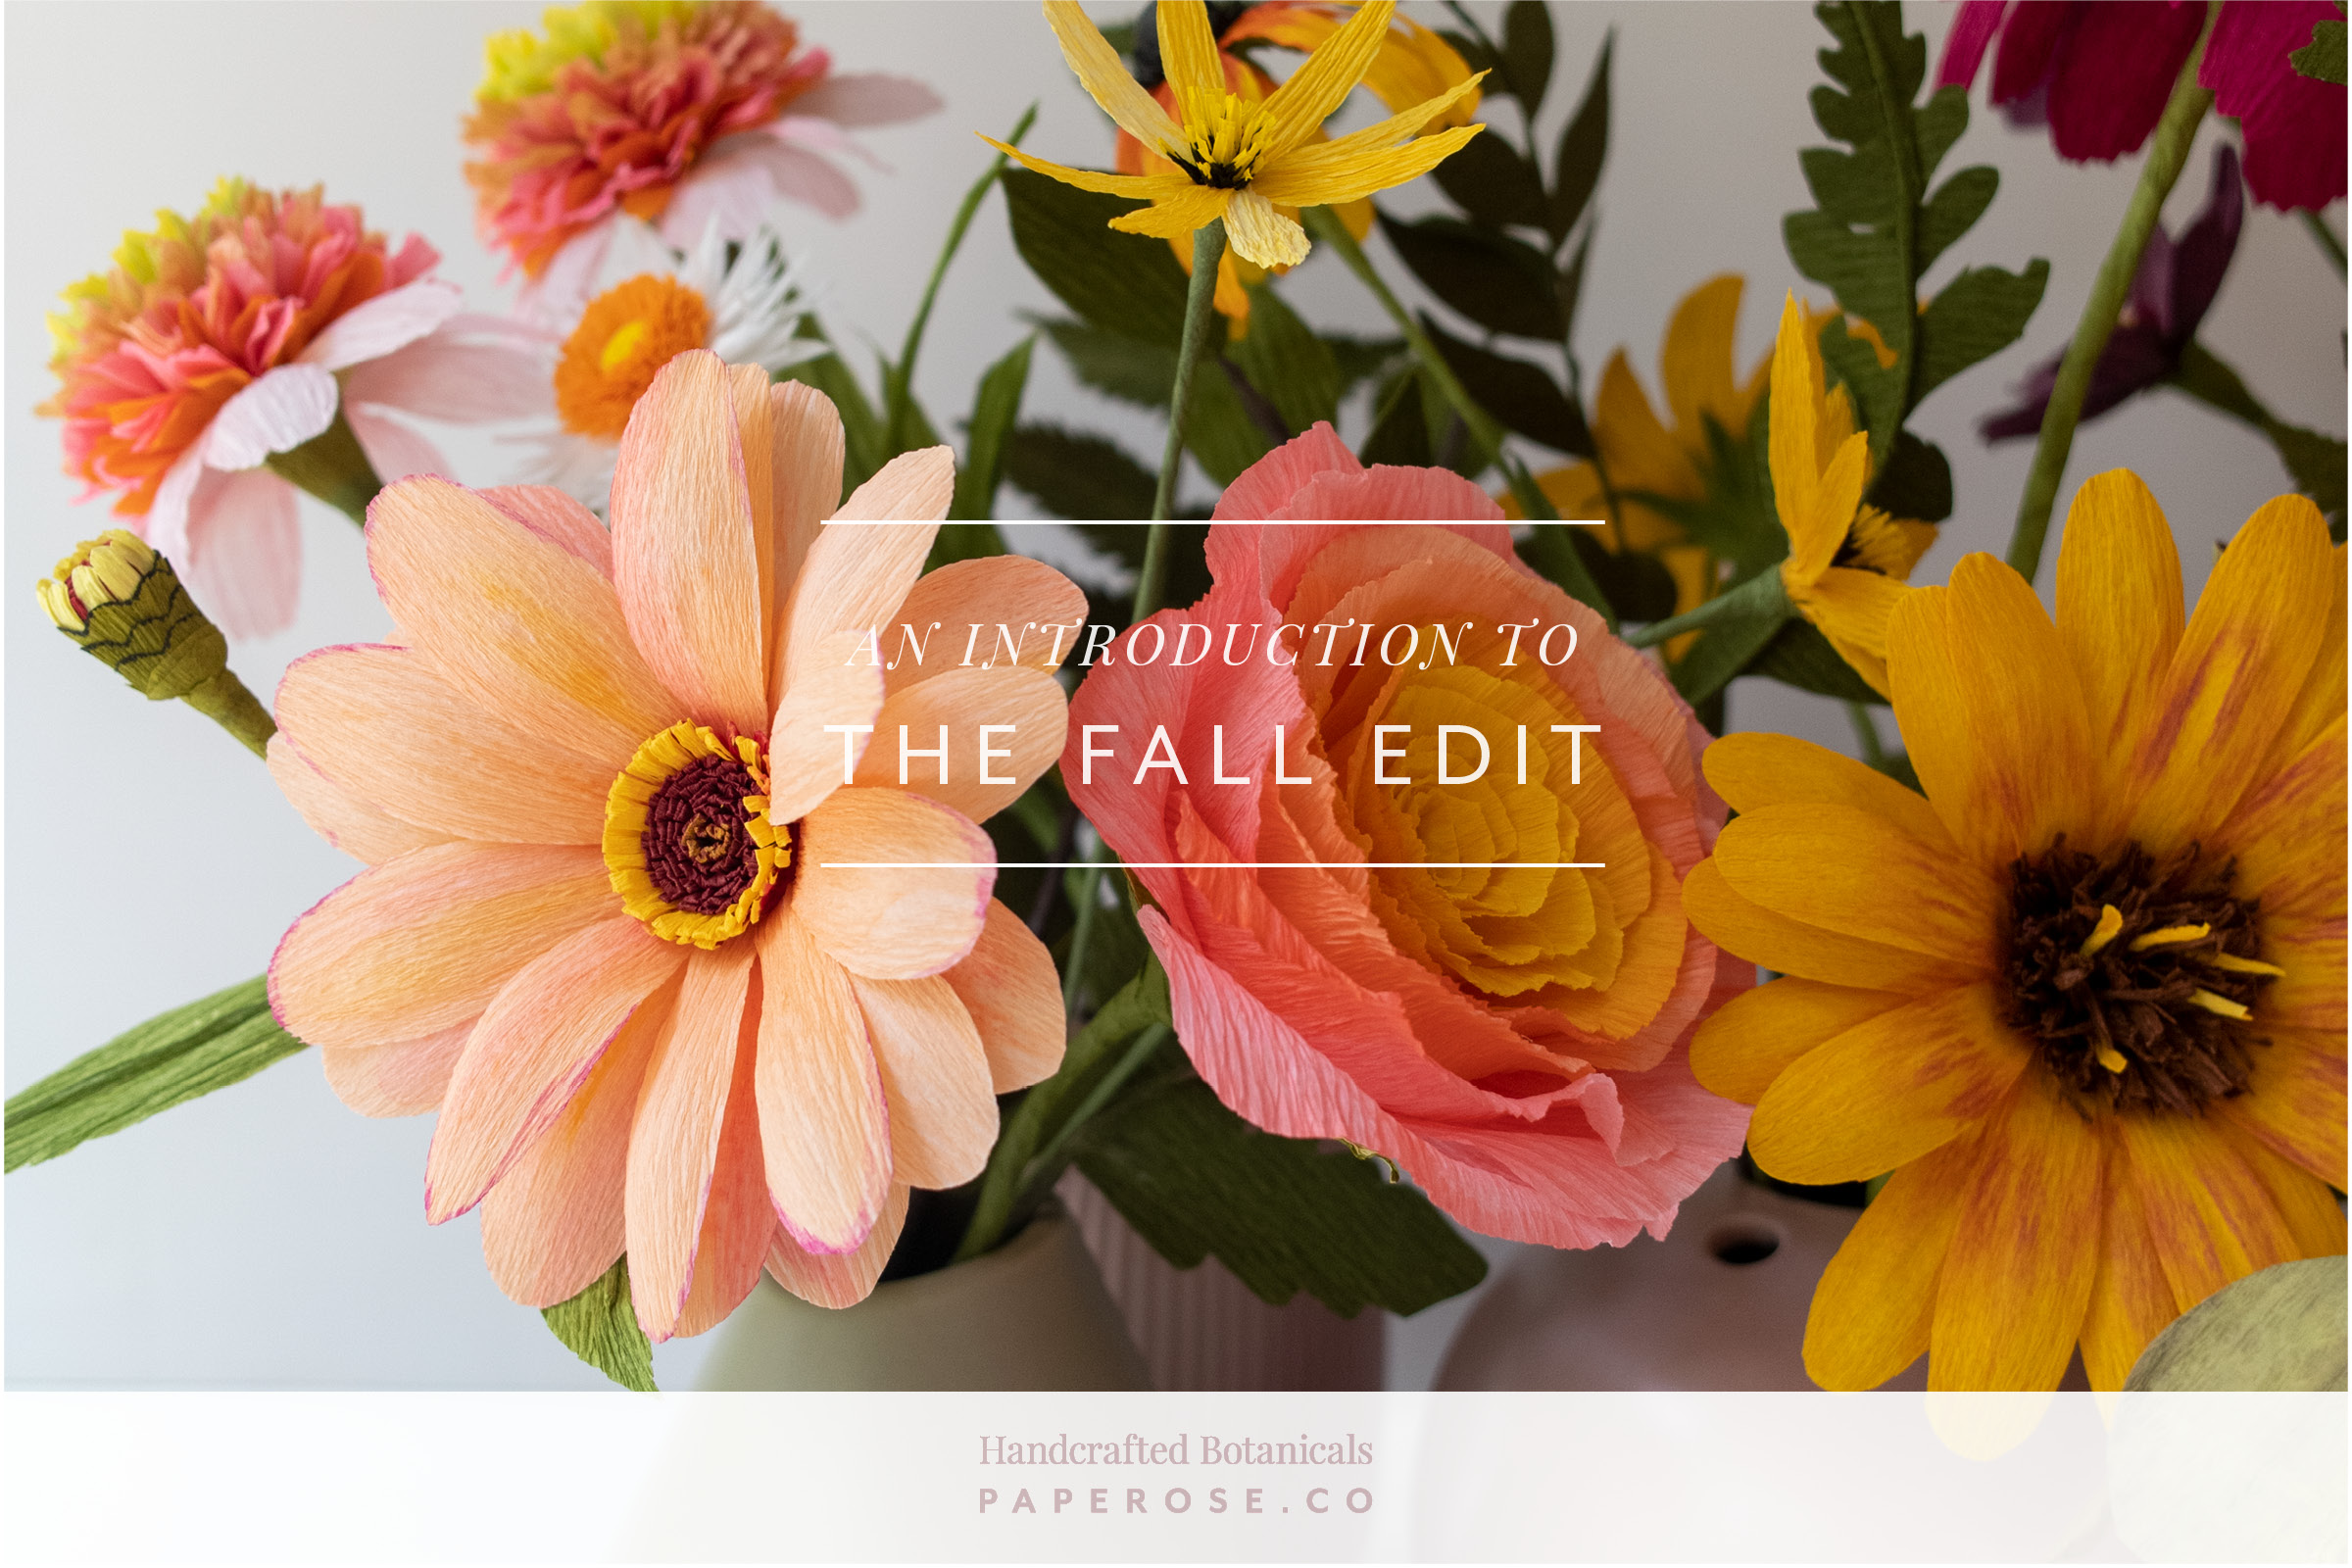 Paper Rose Co. An introduction  to The Fall Edit